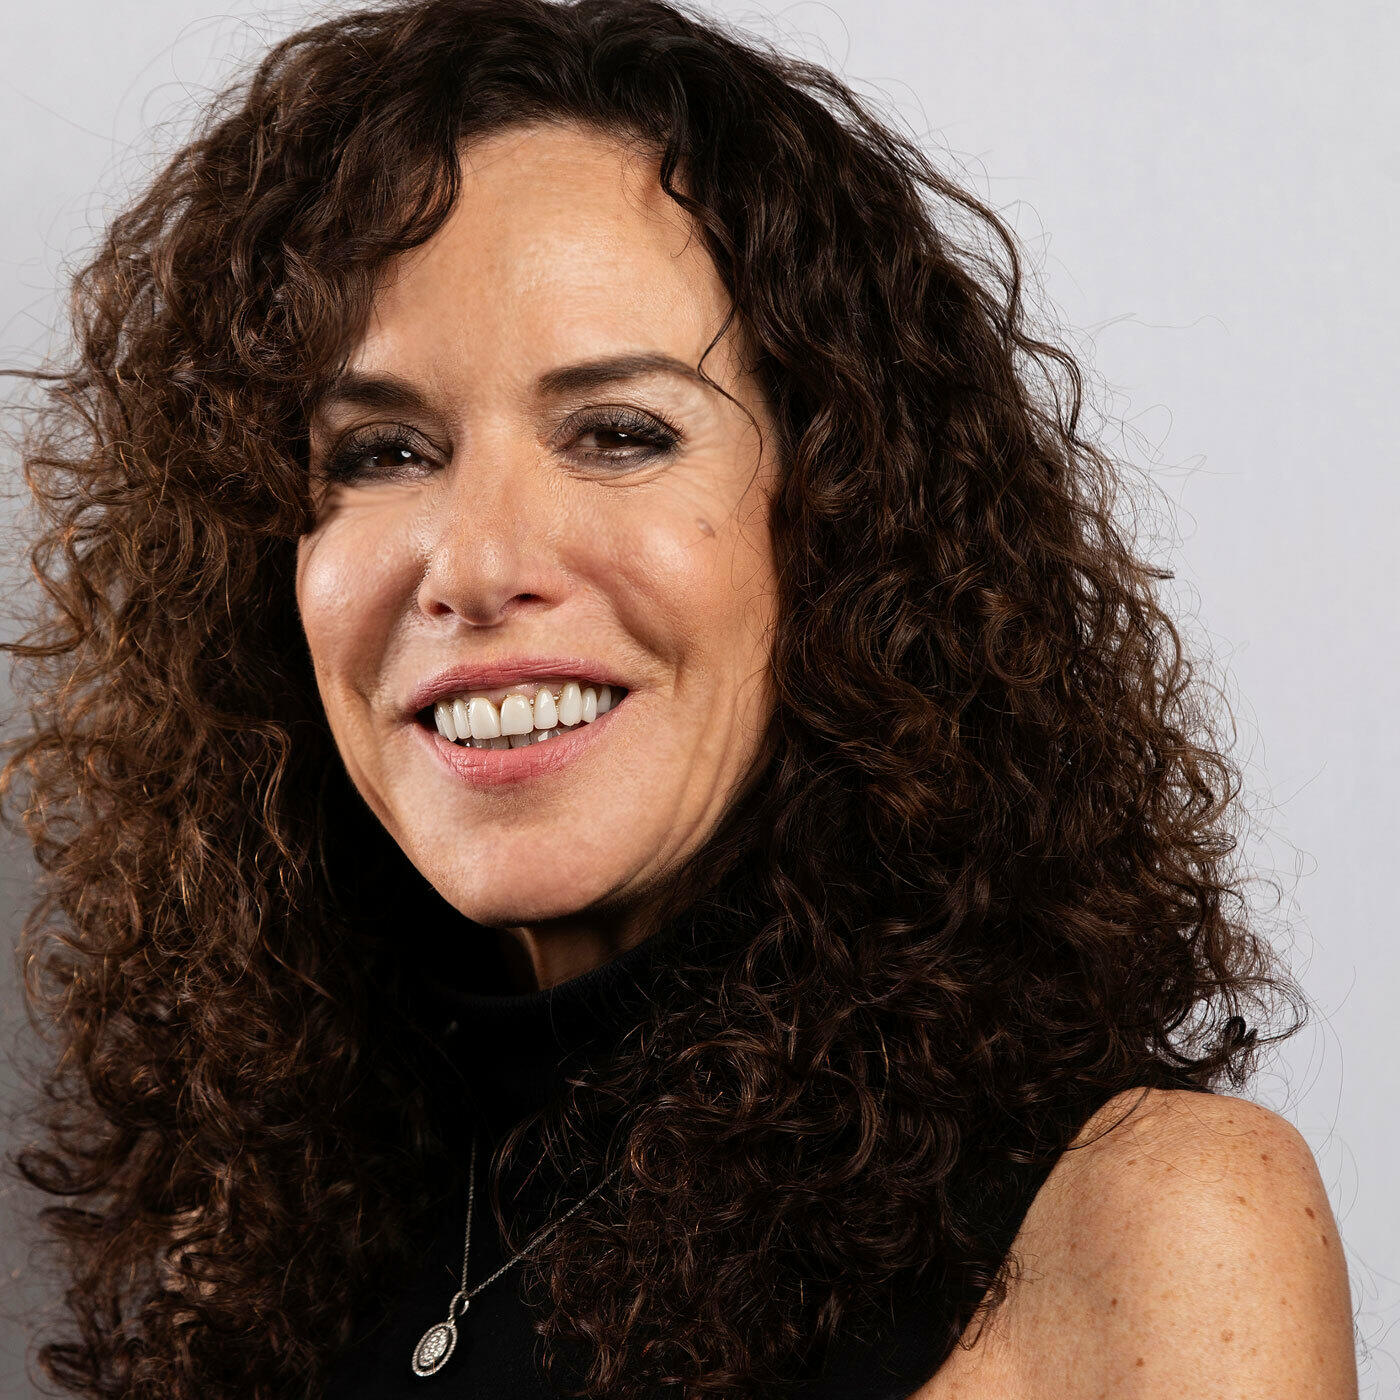 Sonstein Sessions